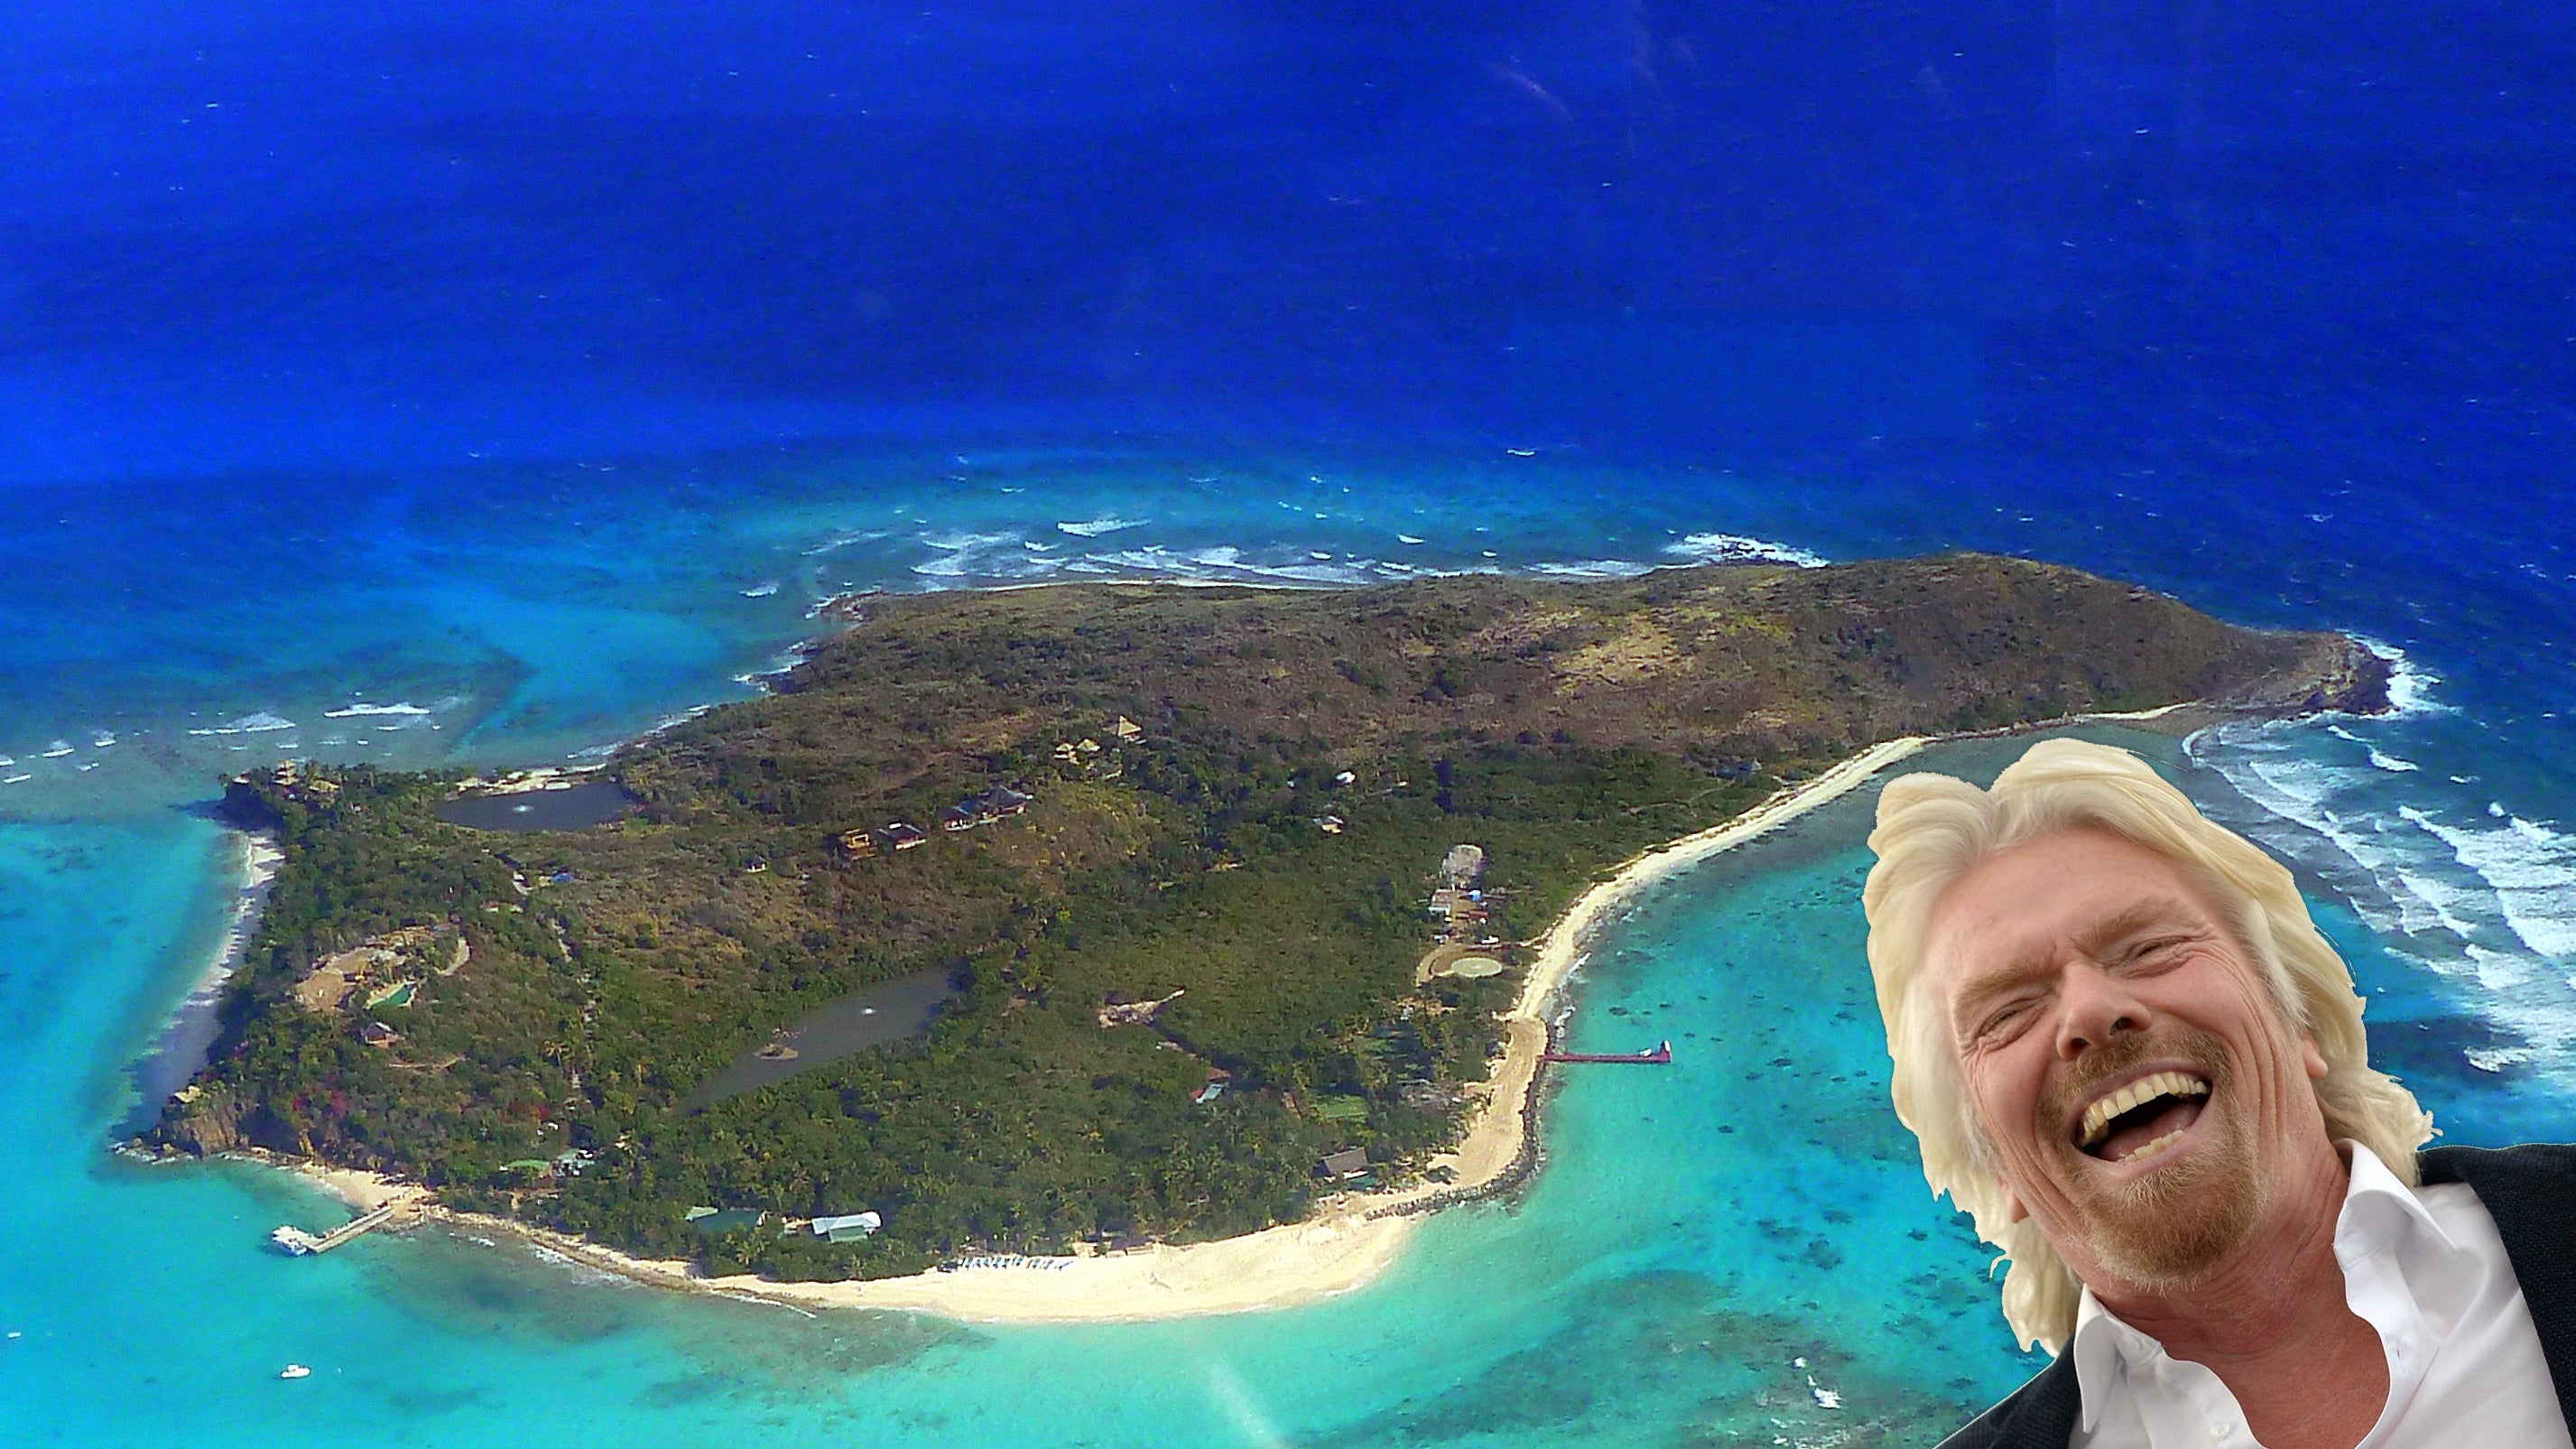 Richard Branson to ride out Irma in wine cellar